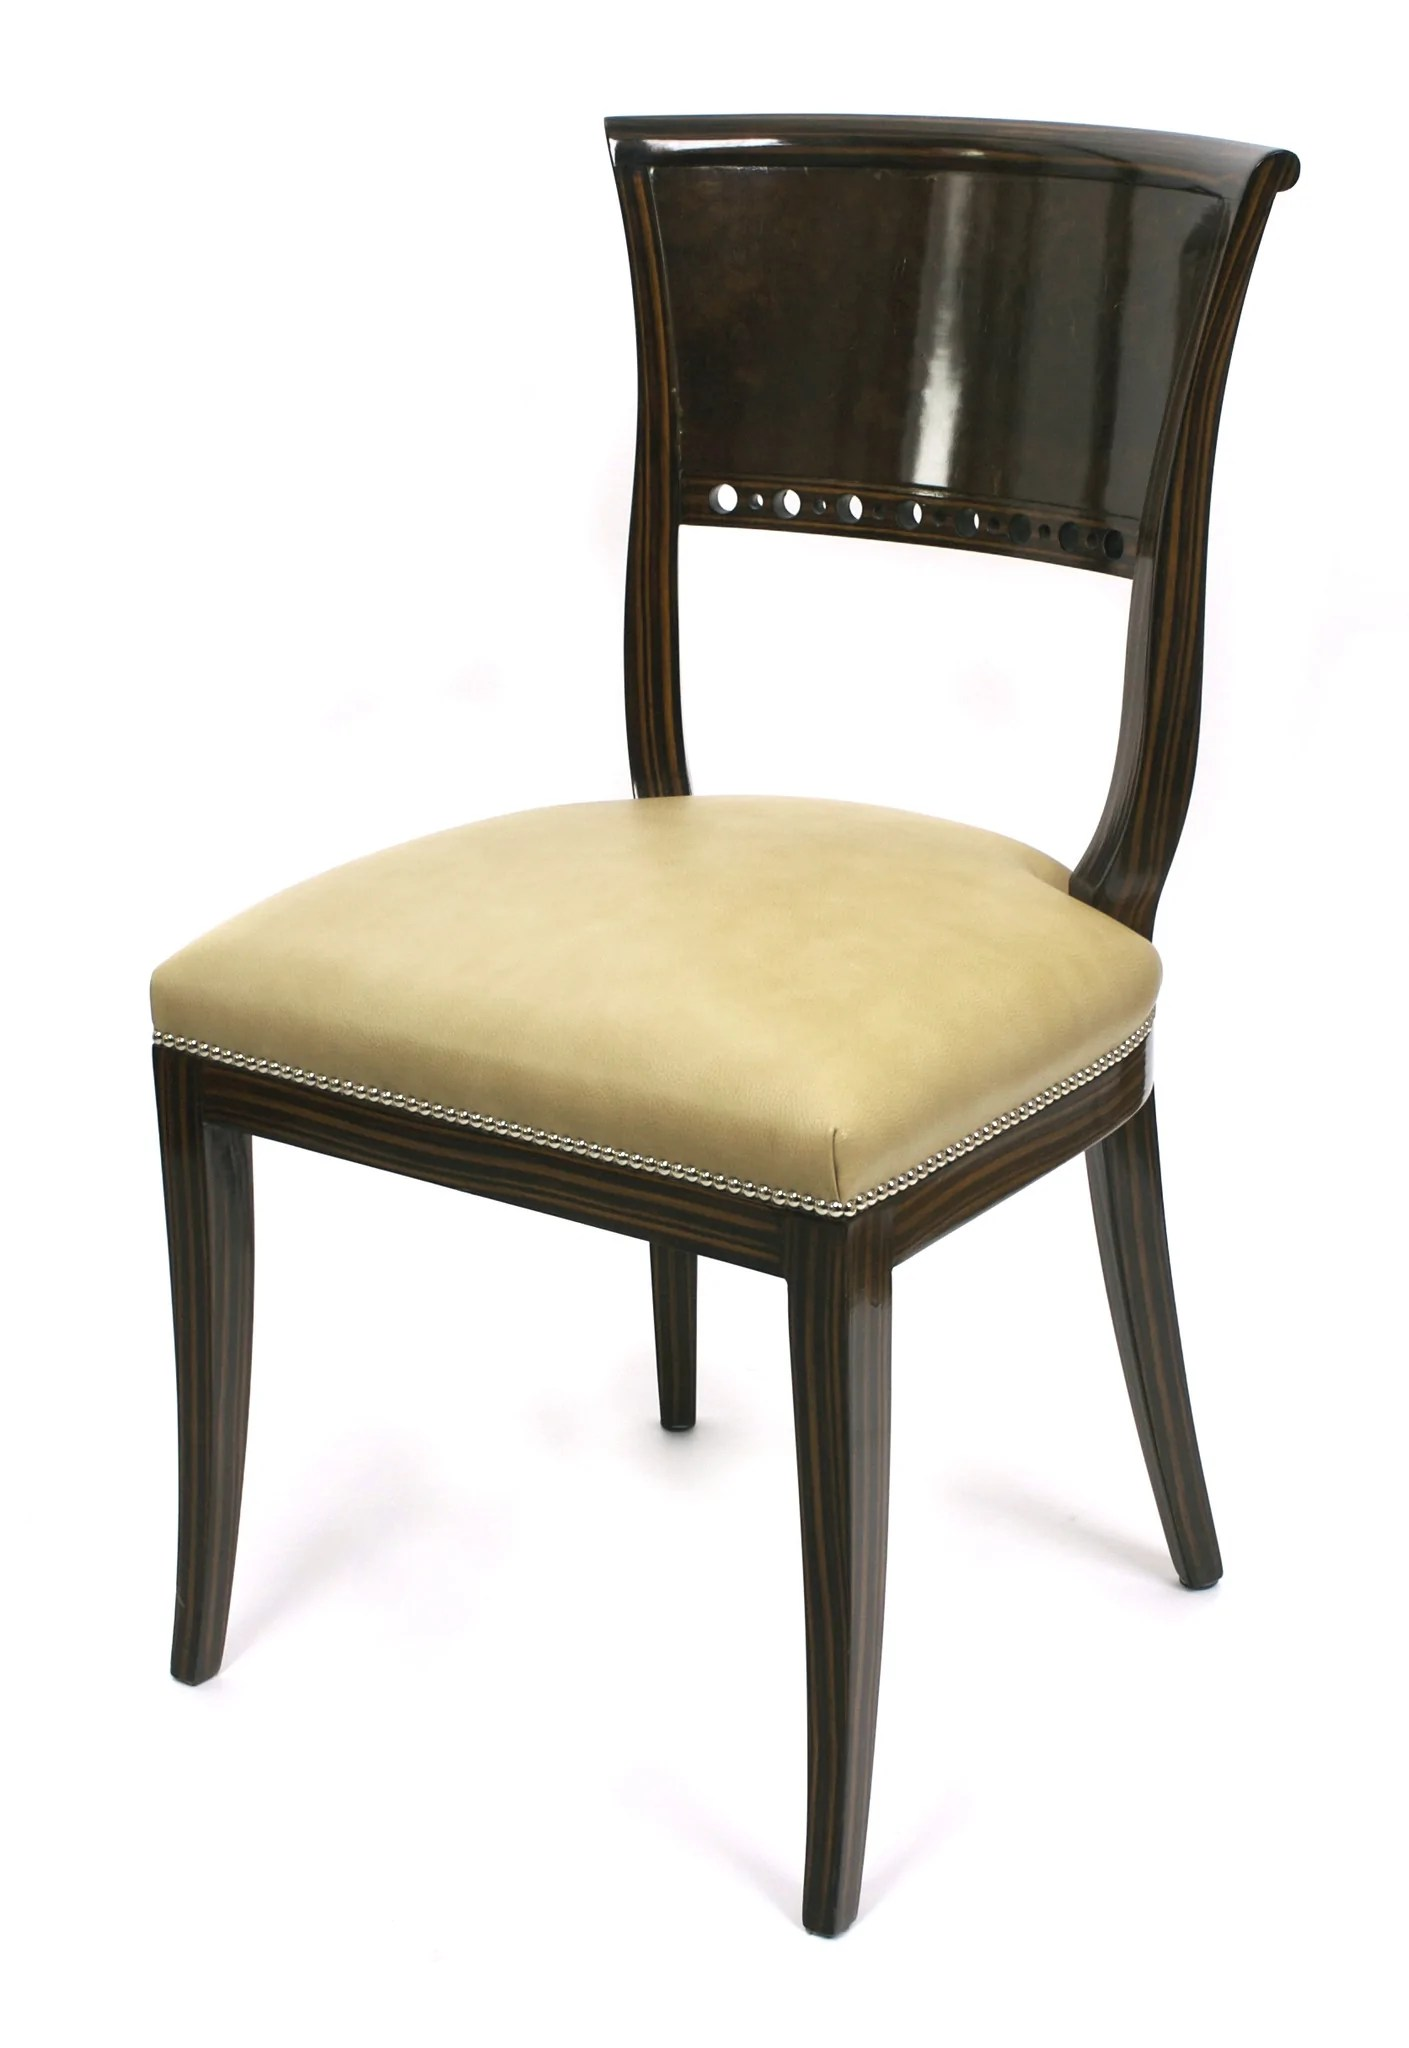 6 Dining Room Chairs Set Of 6 French Dining Room Chairs Circa 1930 1940